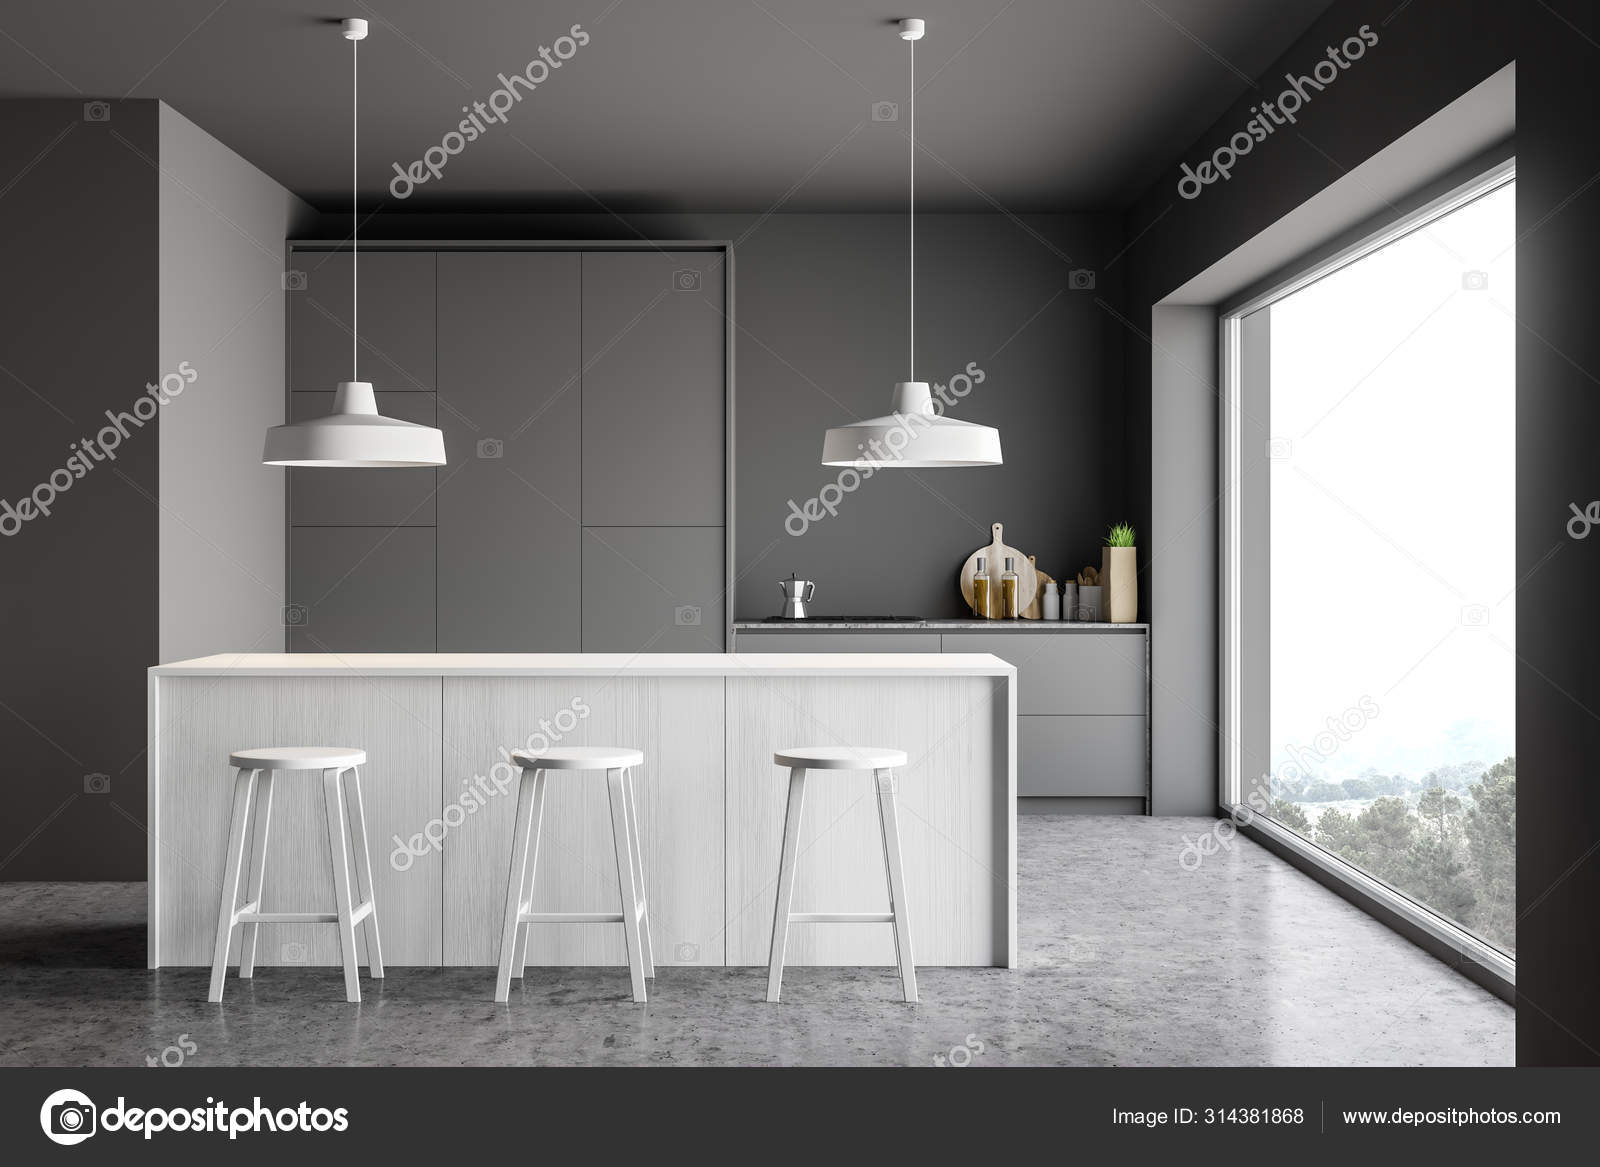 Gray Kitchen With White Bar And Stools Stock Photo Image By C Denisismagilov 314381868